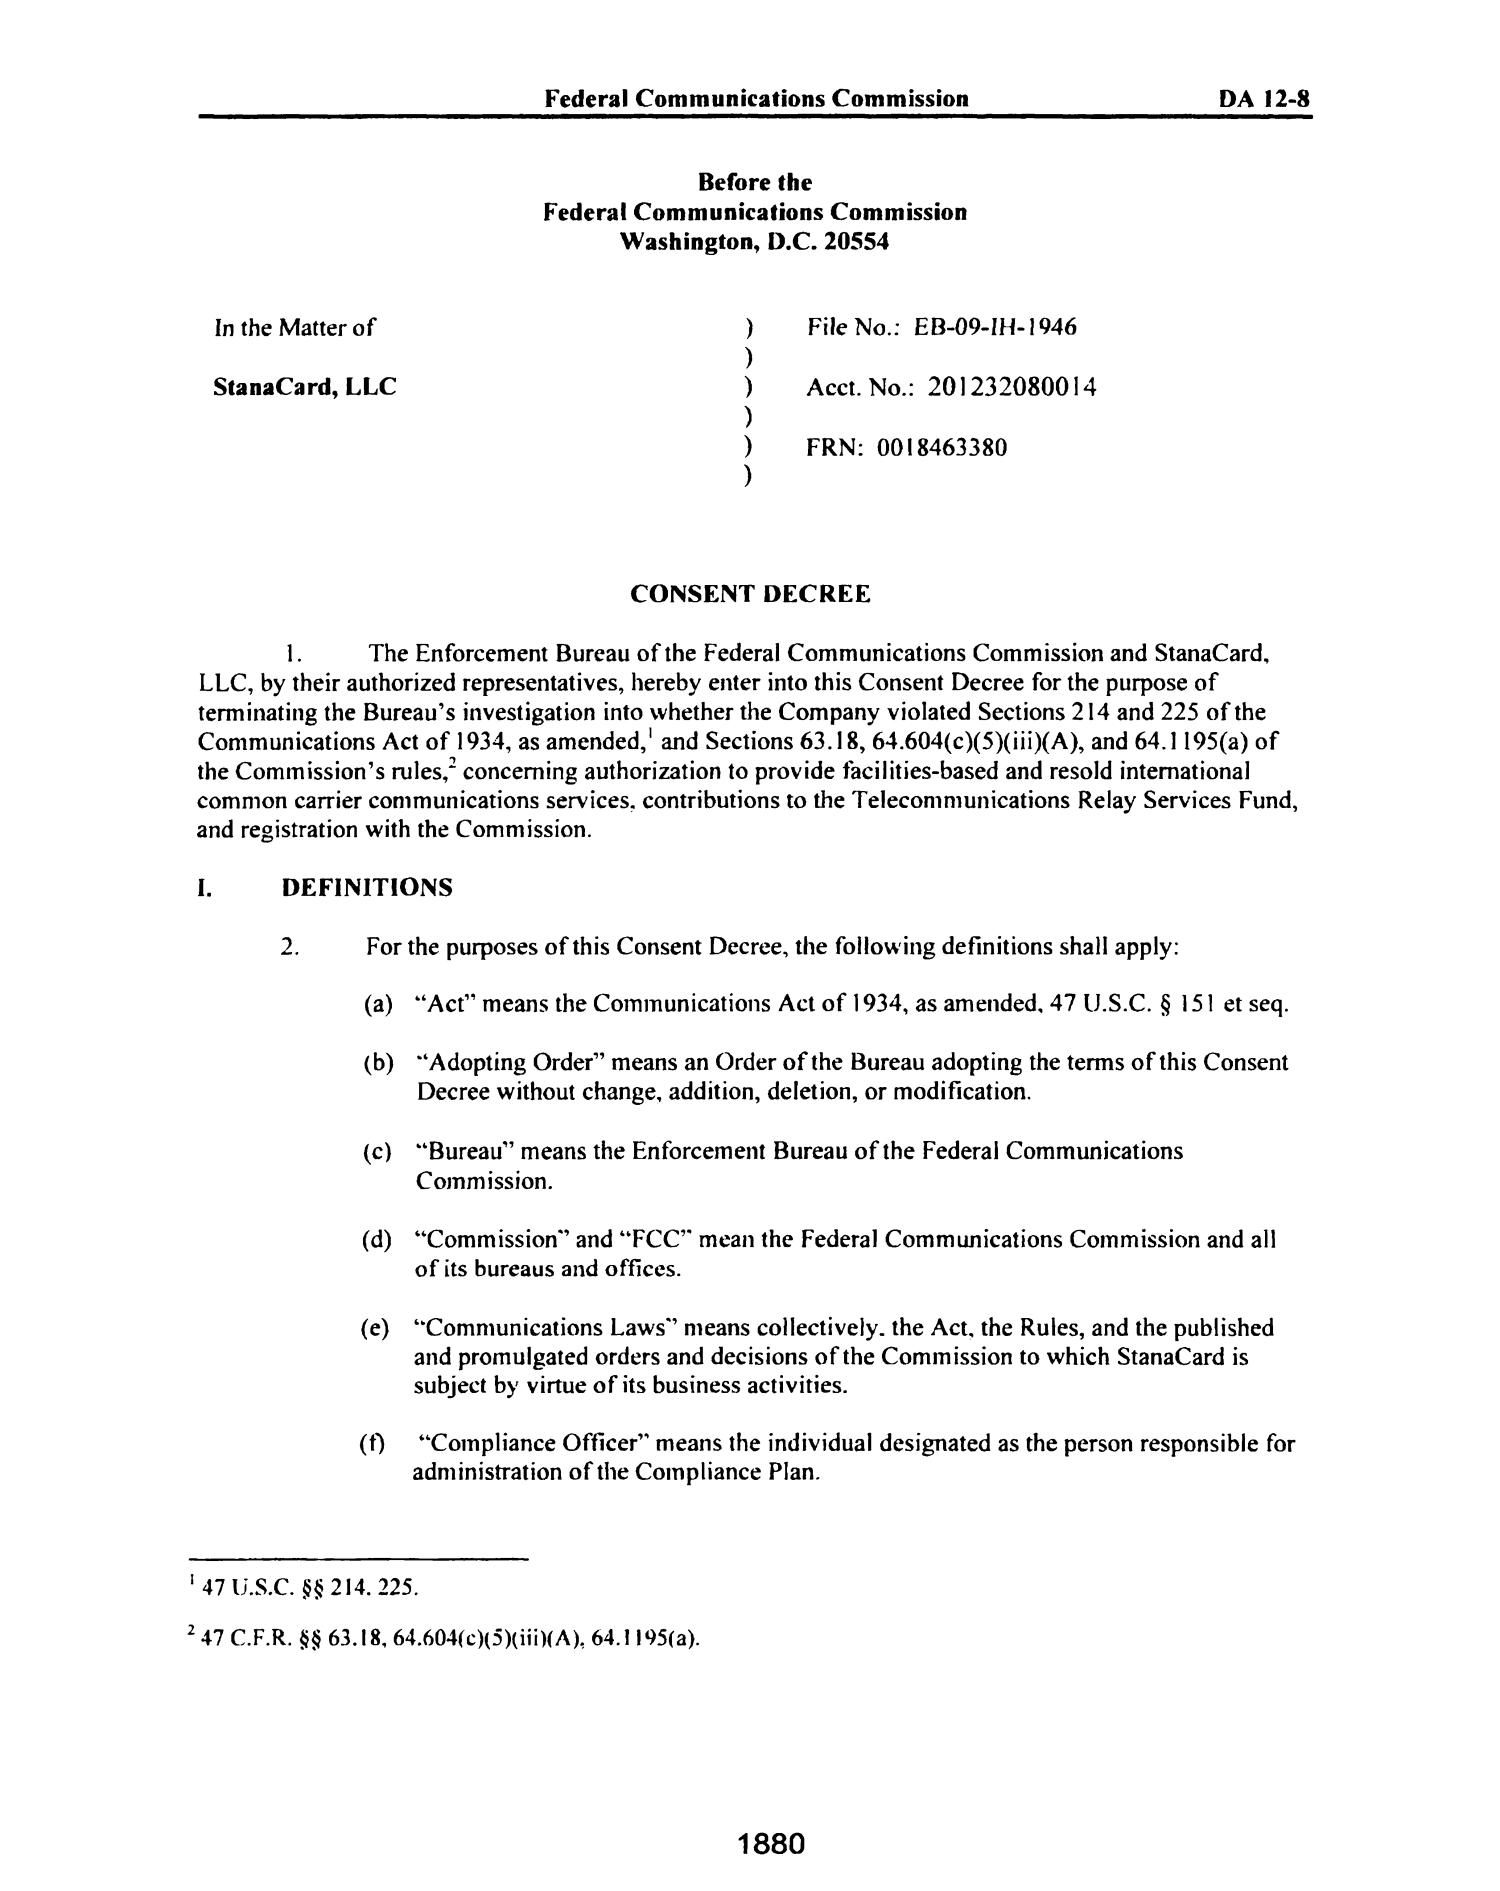 FCC Record, Volume 27, No. 3, Pages 1878 to 2785, February 21 - March 16, 2012                                                                                                      1880